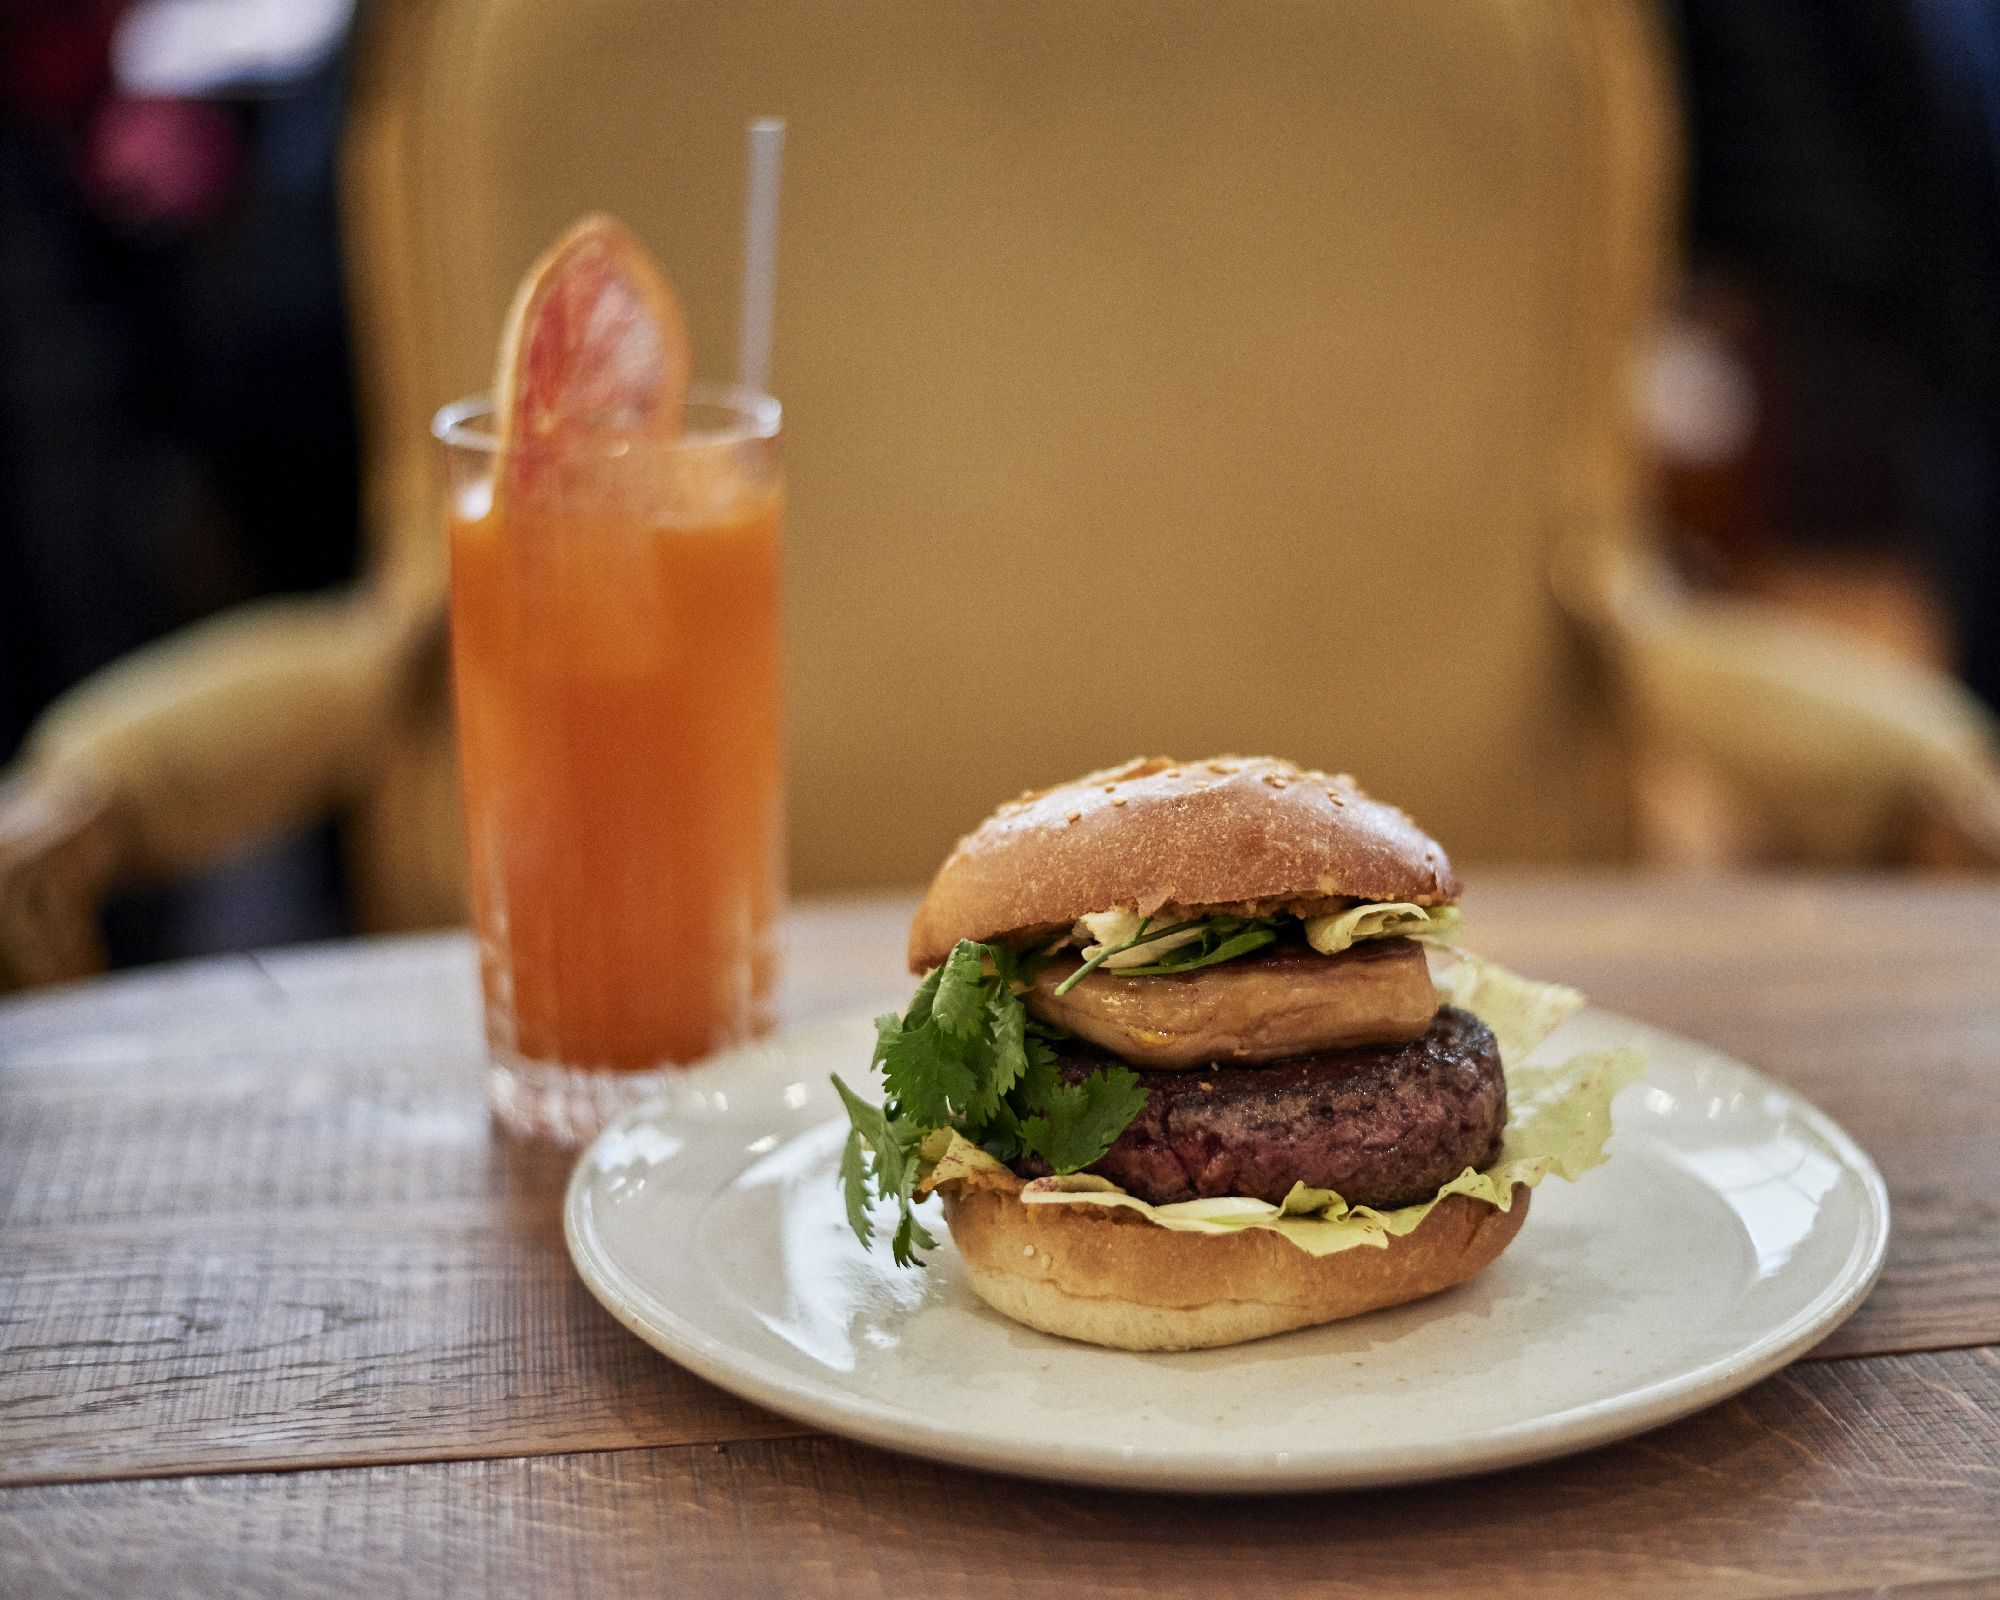 27/Photos/Restaurant-Joia-Brunch-Burger.jpg